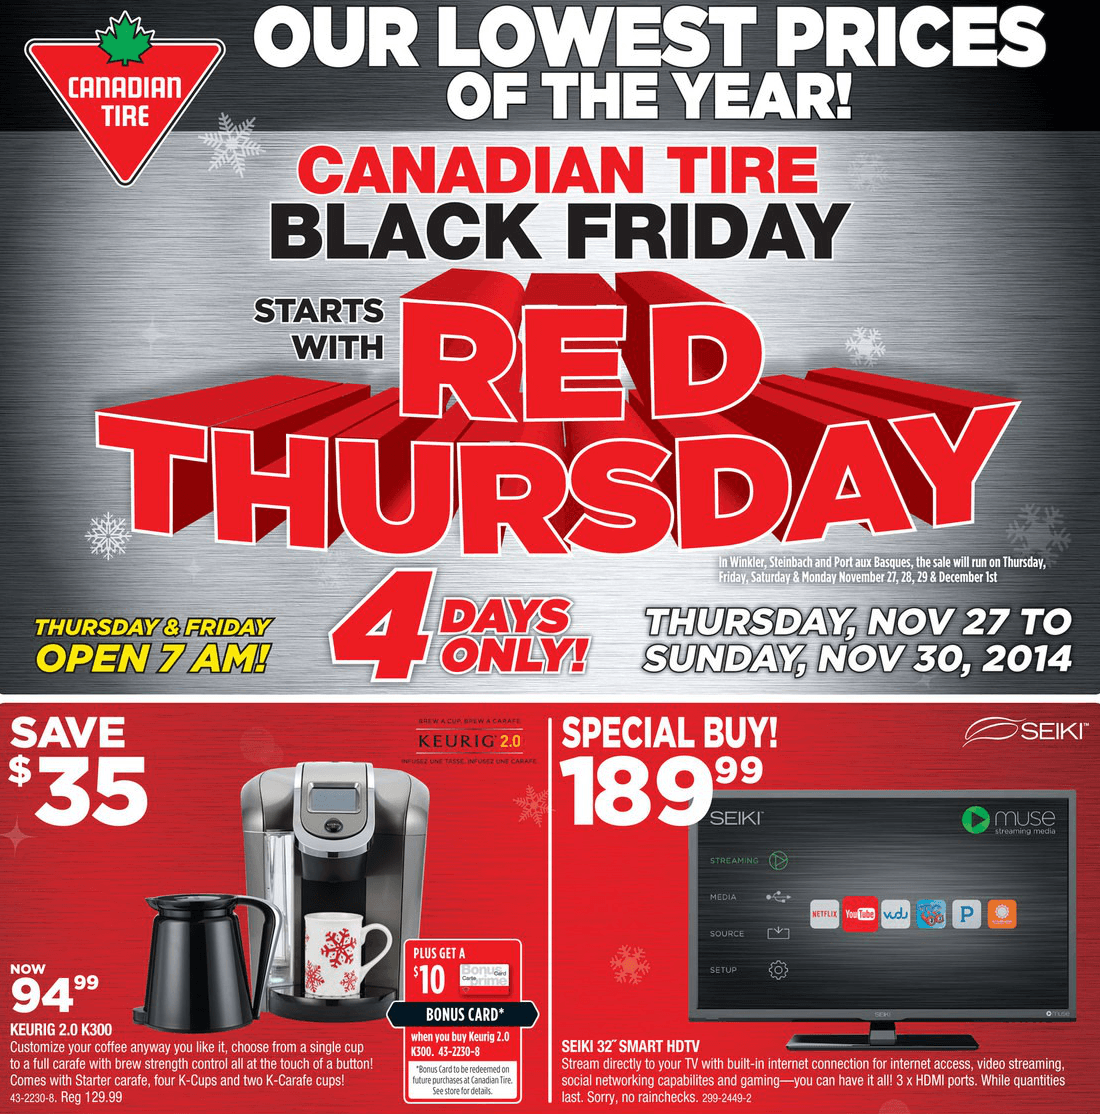 Take advantage of a variety of deals offered by Canadian Tire in the Black Friday and Cyber Monday events. Find great Black Friday deals on tools & hardware, home appliances, automotive supplies and more.